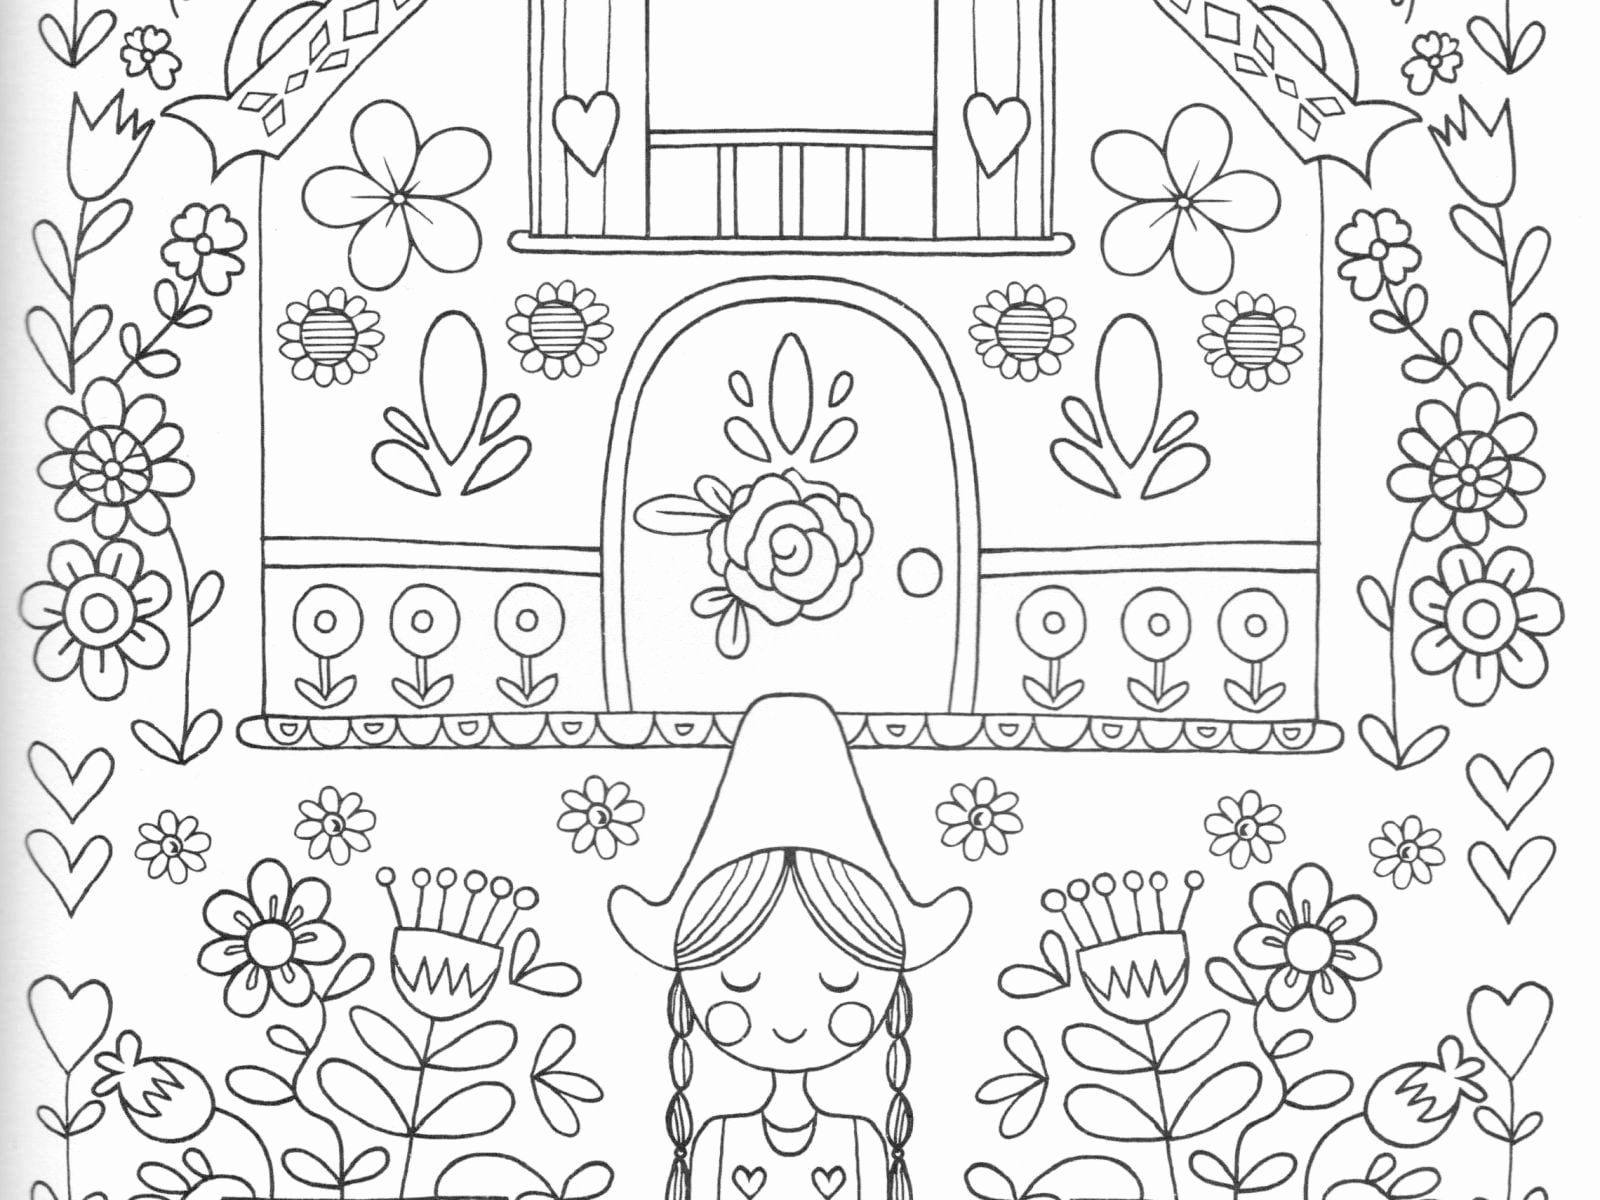 Mary Engelbreit Coloring Pages Christmas Best Of Coloring Extraordinary Mary Engelbreit Coloring Boo In 2020 Christmas Coloring Pages Mary Engelbreit Cat Coloring Book